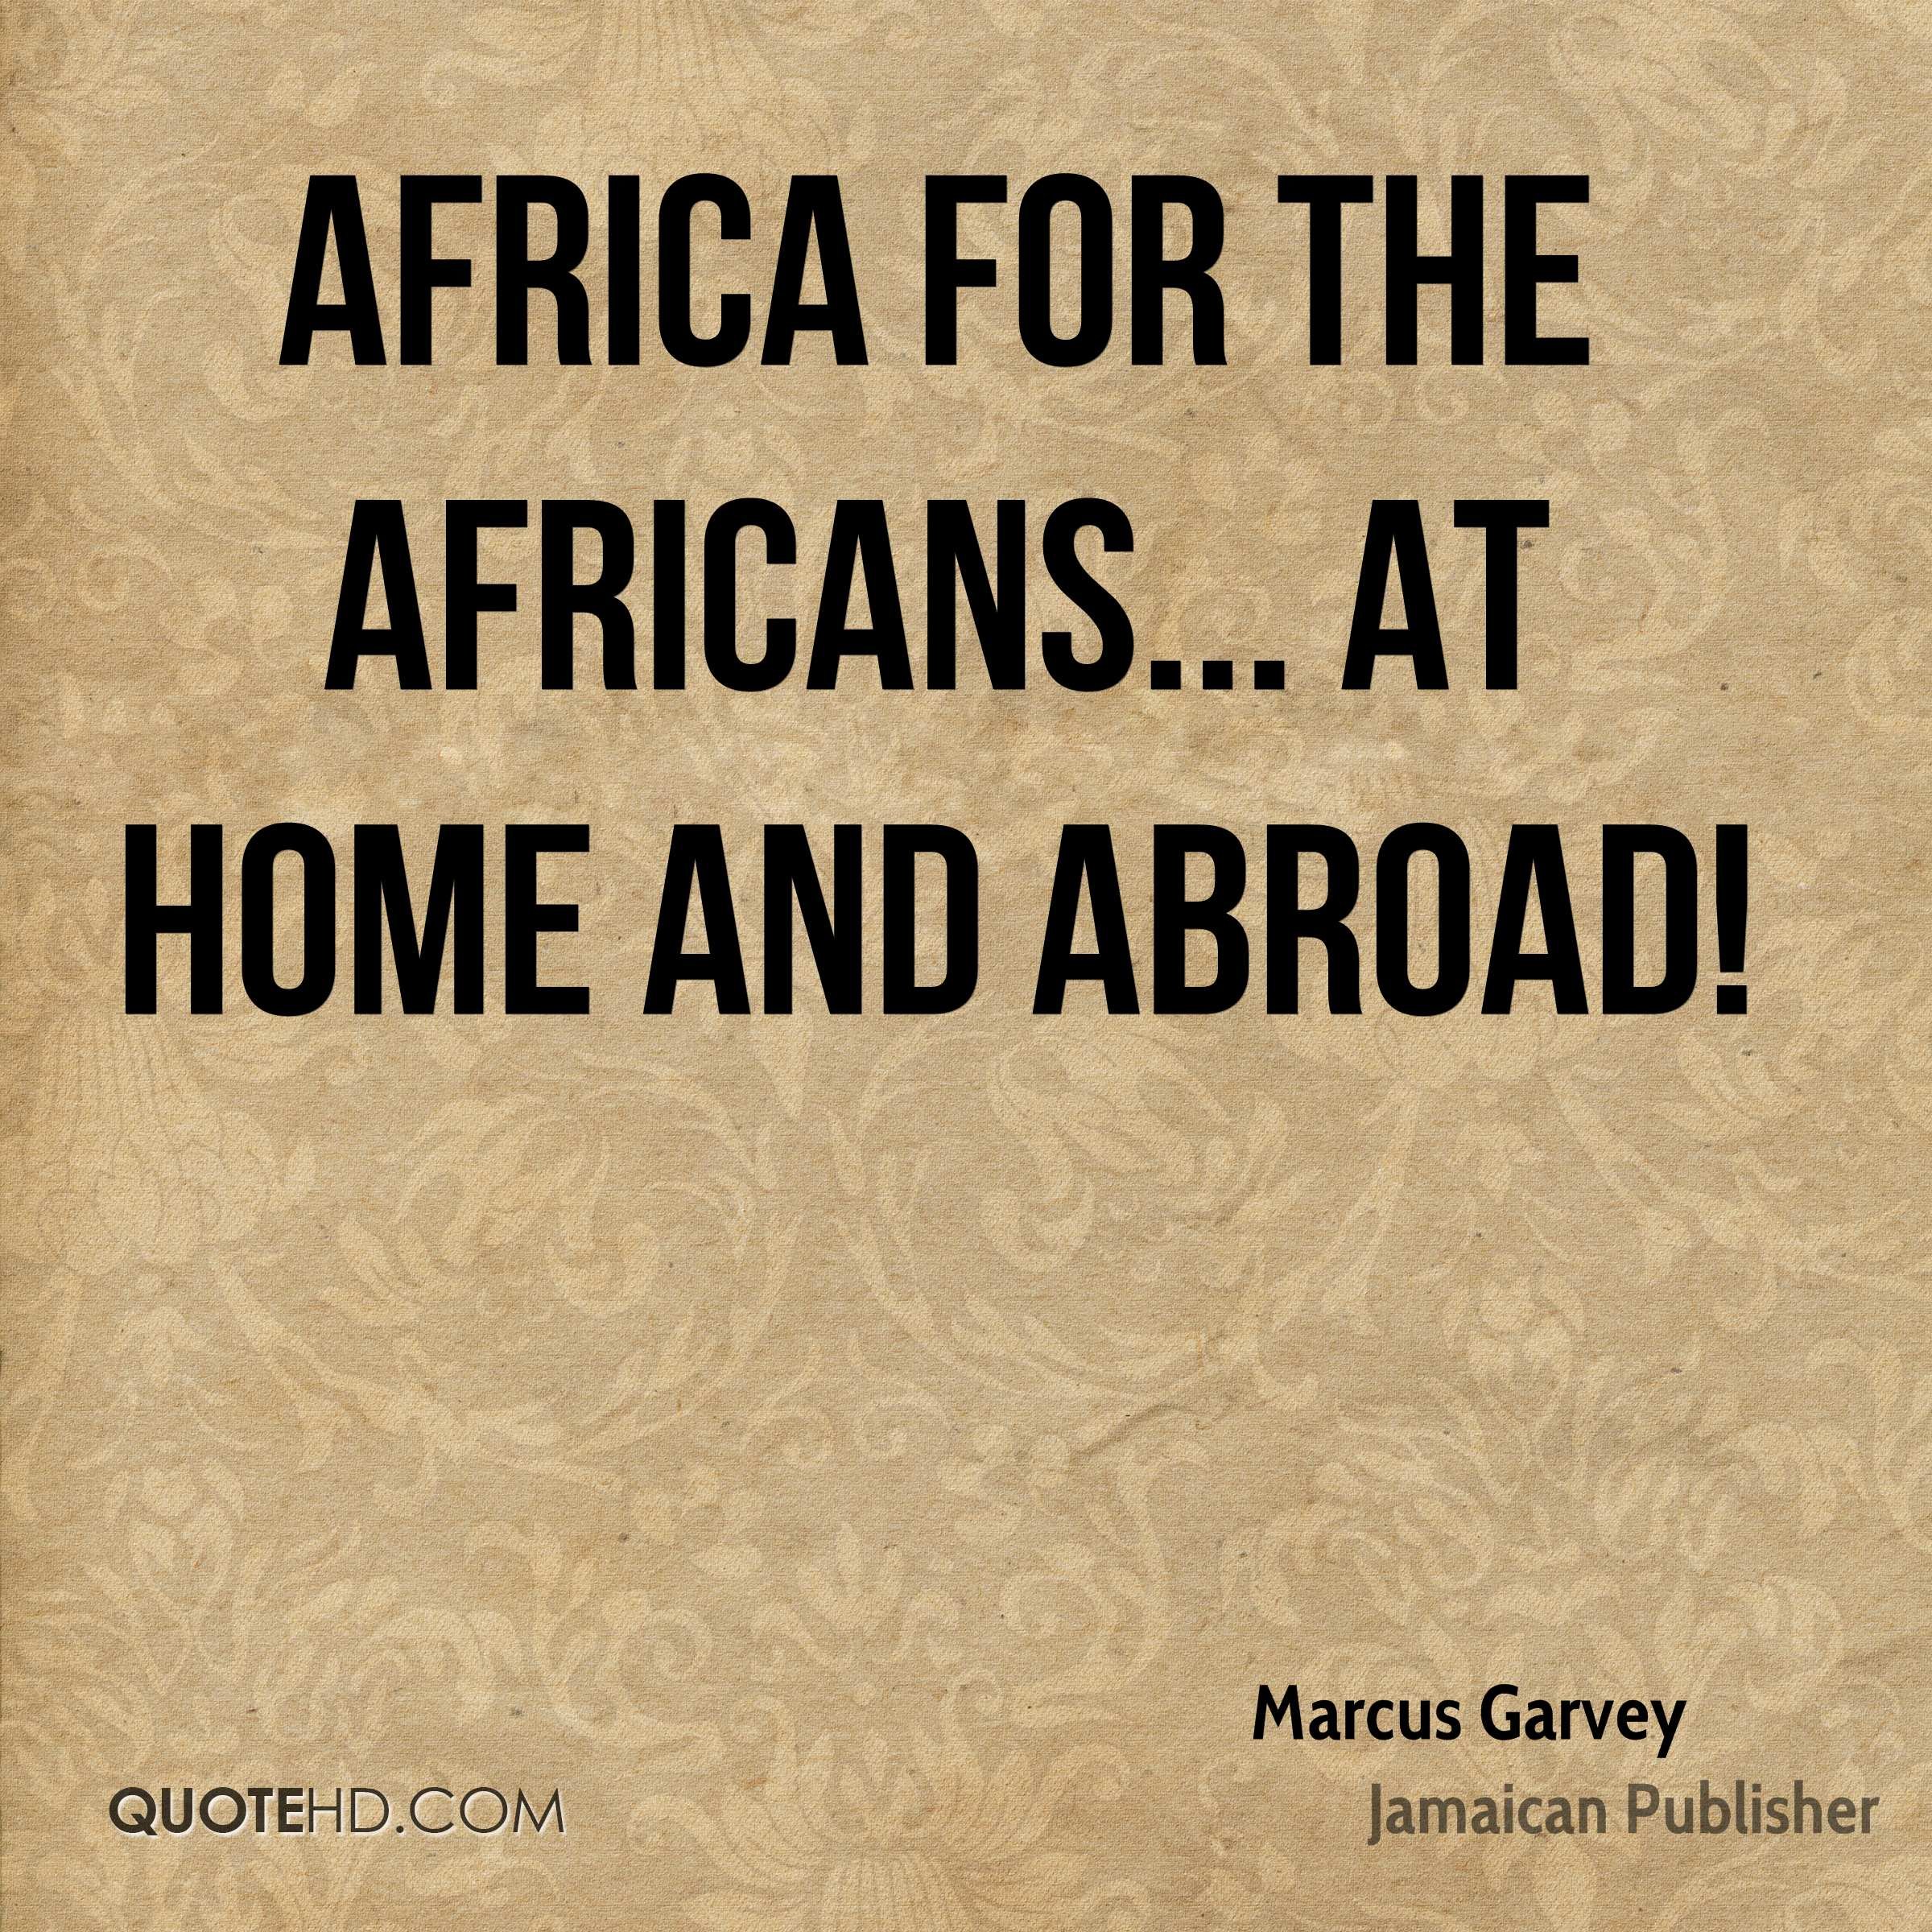 Jamaican Quotes Marcus Garvey Home Quotes  Quotehd